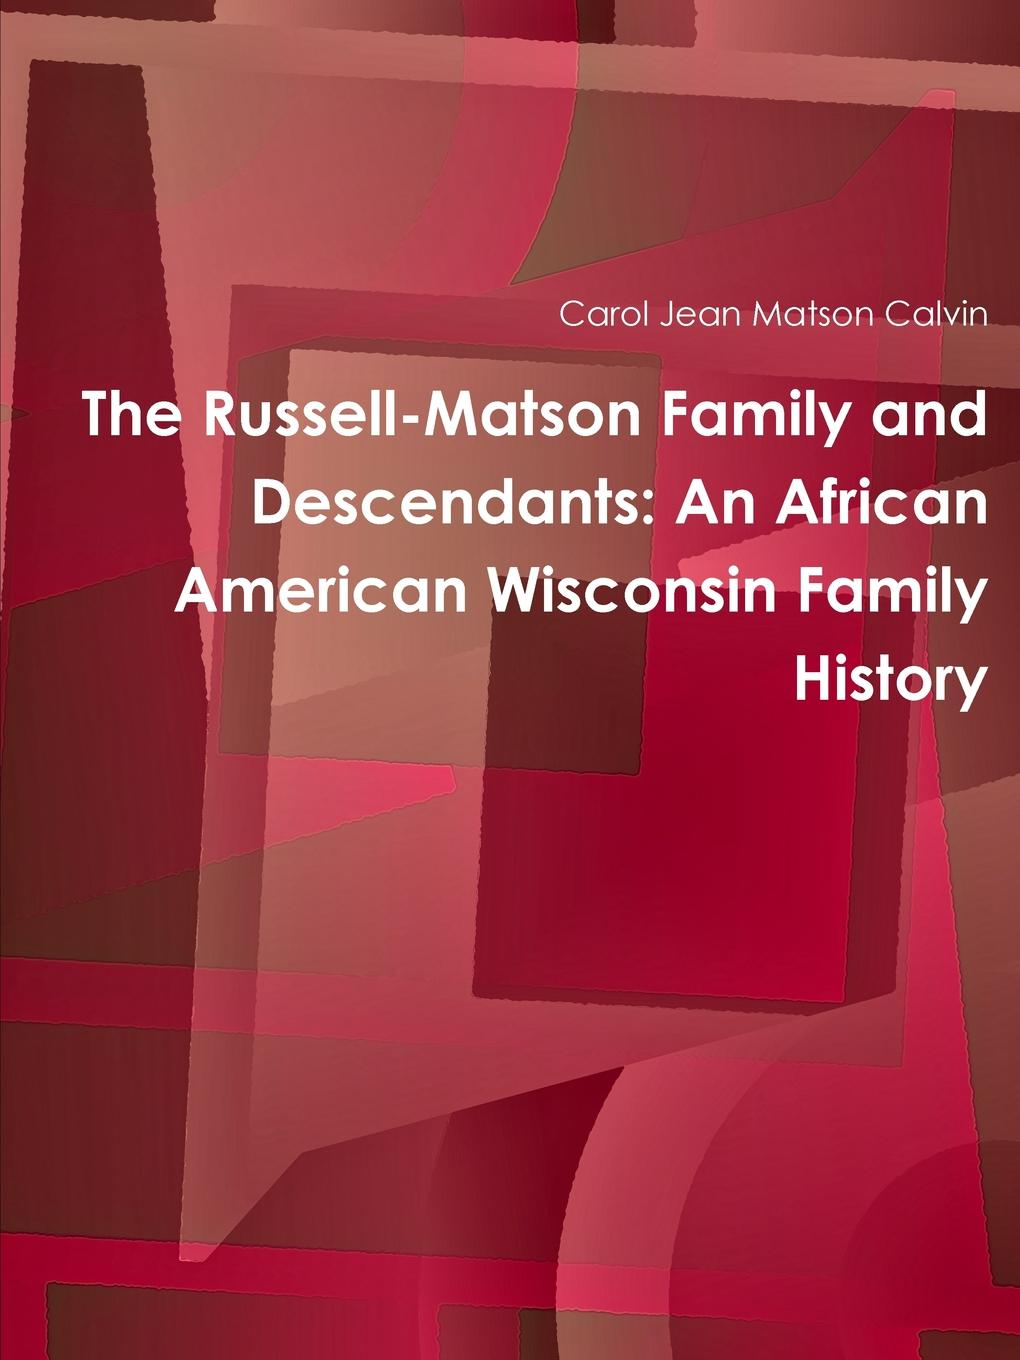 Carol Jean Matson Calvin The Russell-Matson Family and Descendants. An African American Wisconsin Family History martin wood the family and descendants of st thomas more